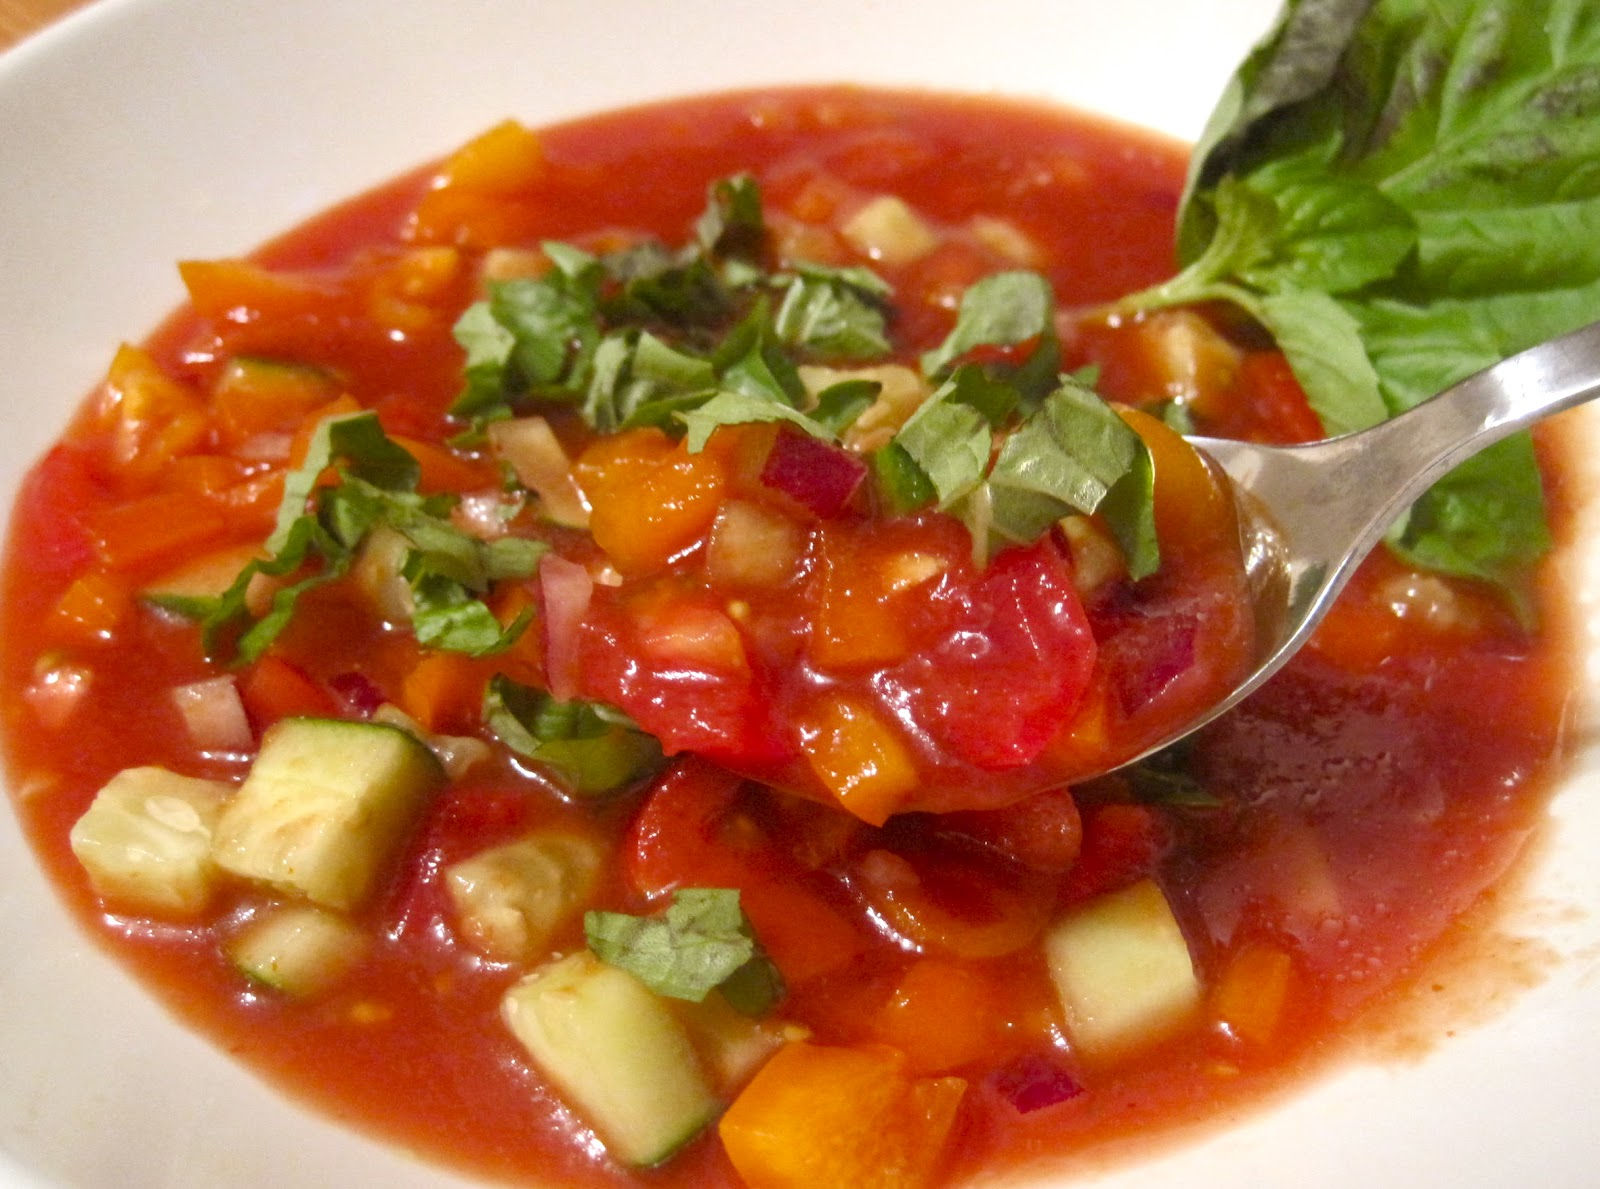 Easy Summer Gazpacho (from Health Magazine Jul/Aug 2005 issue)